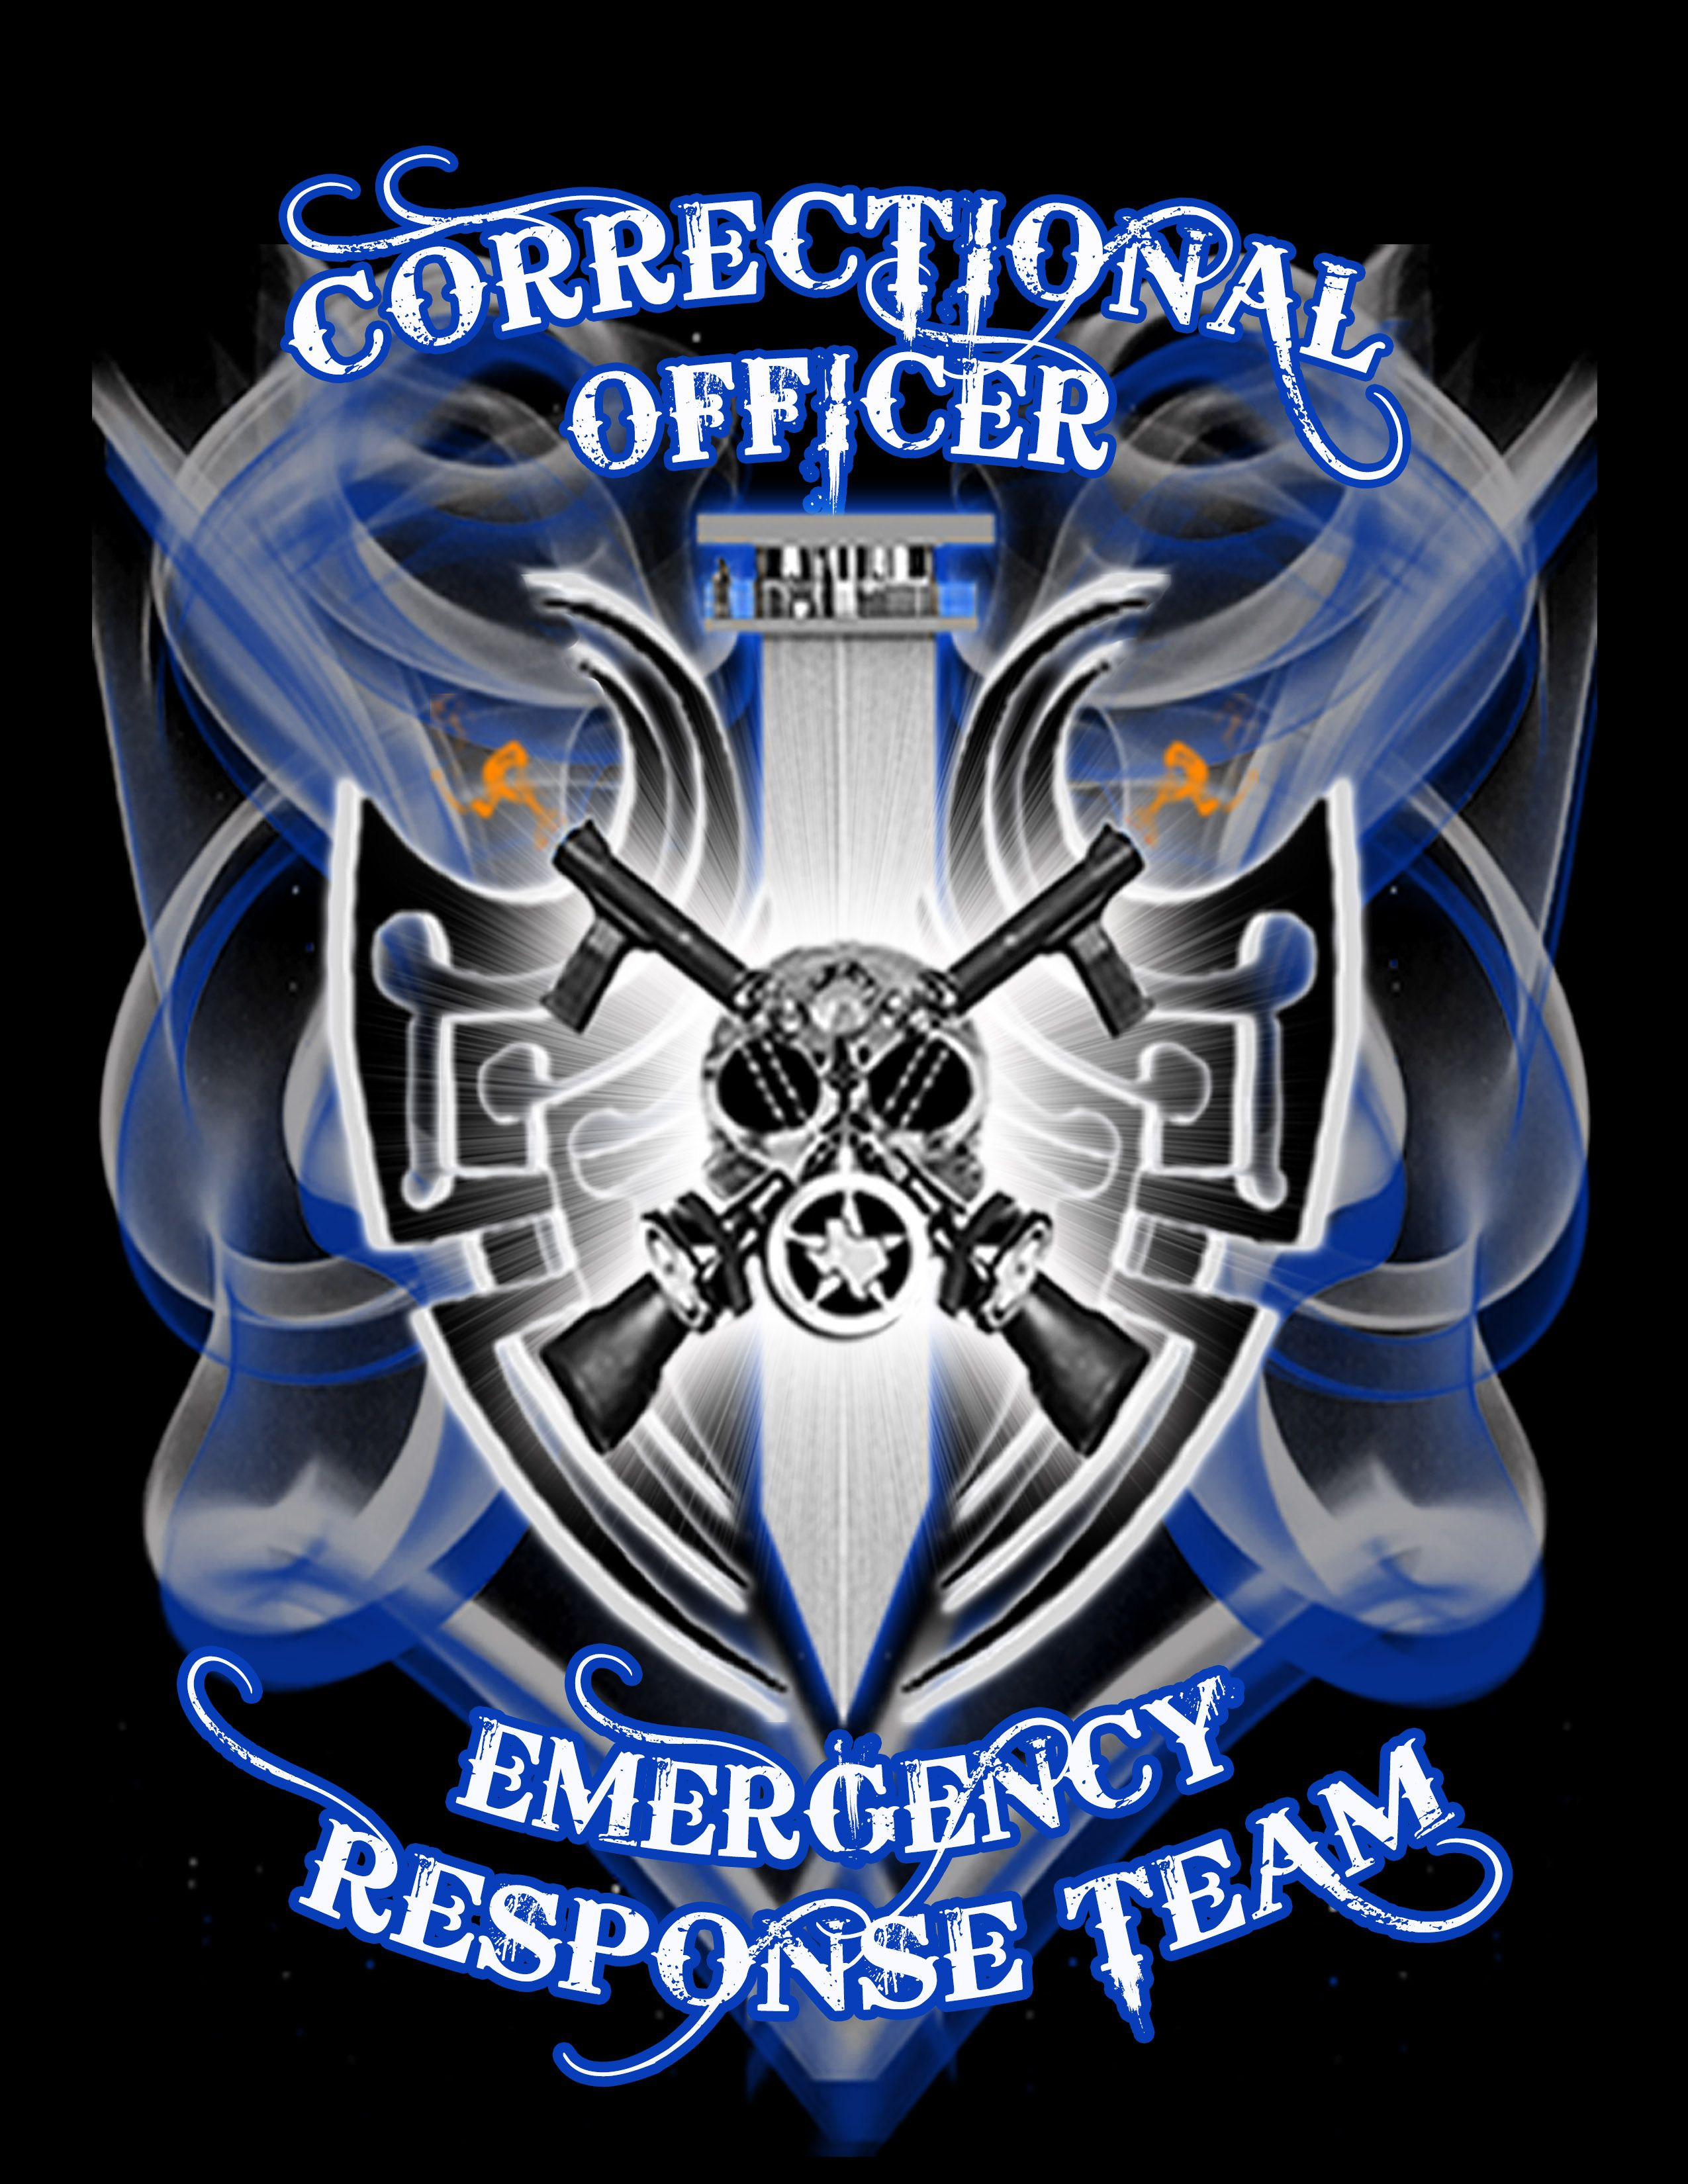 Correctional Officers (With images) Correctional officer